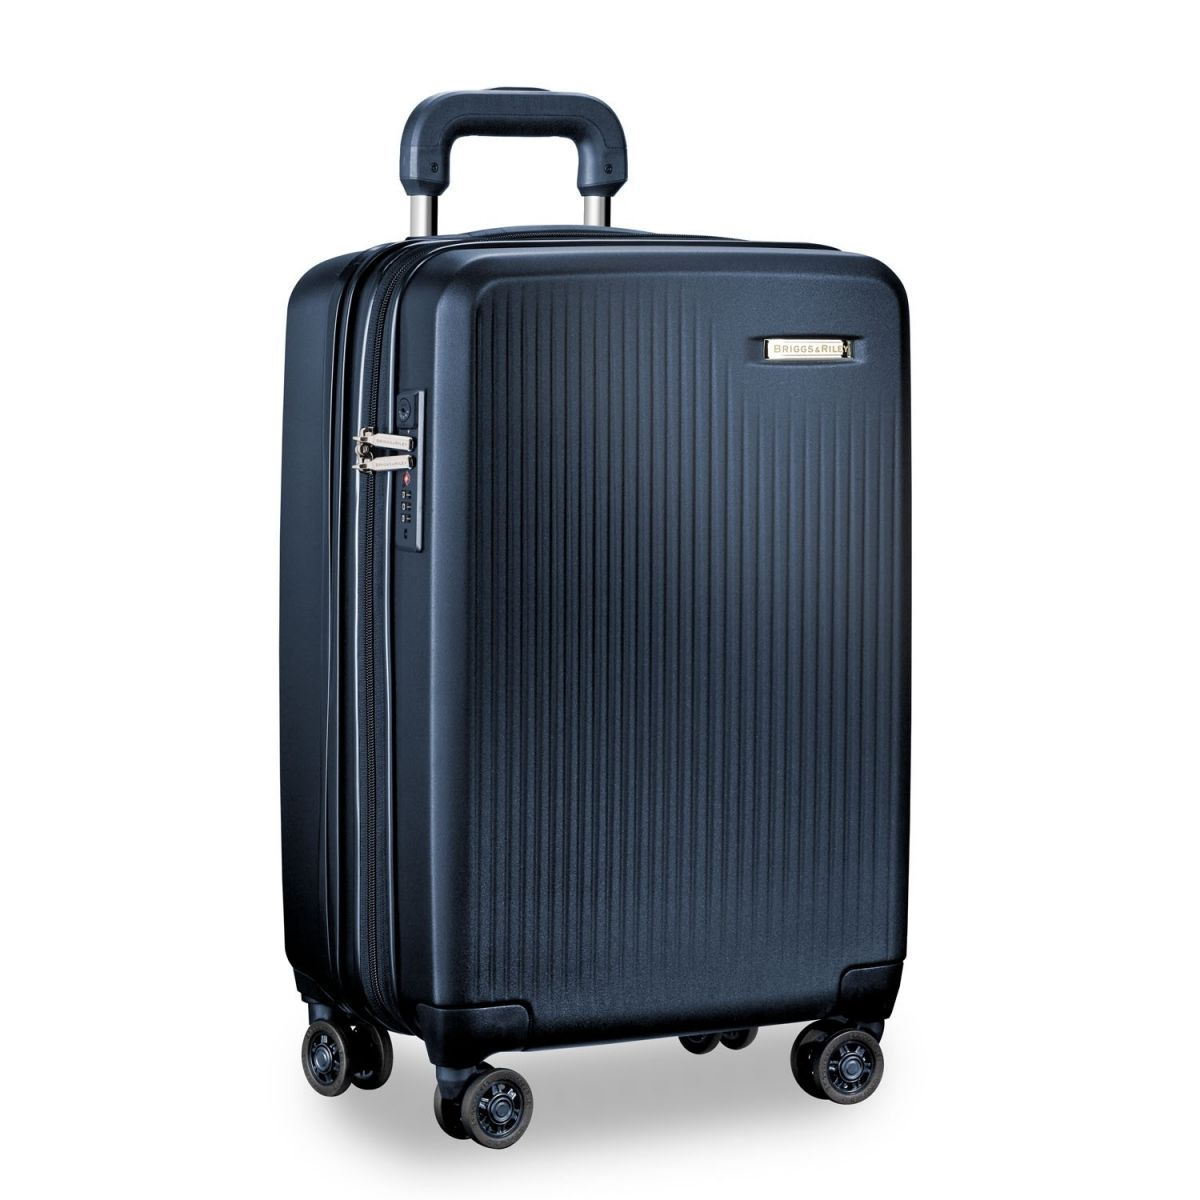 กระเป๋าเดินทาง BRIGGS & RILEY รุ่น SU122CXSP-59 Domestic Carry-On Expandable Spinner สี Matt Navy